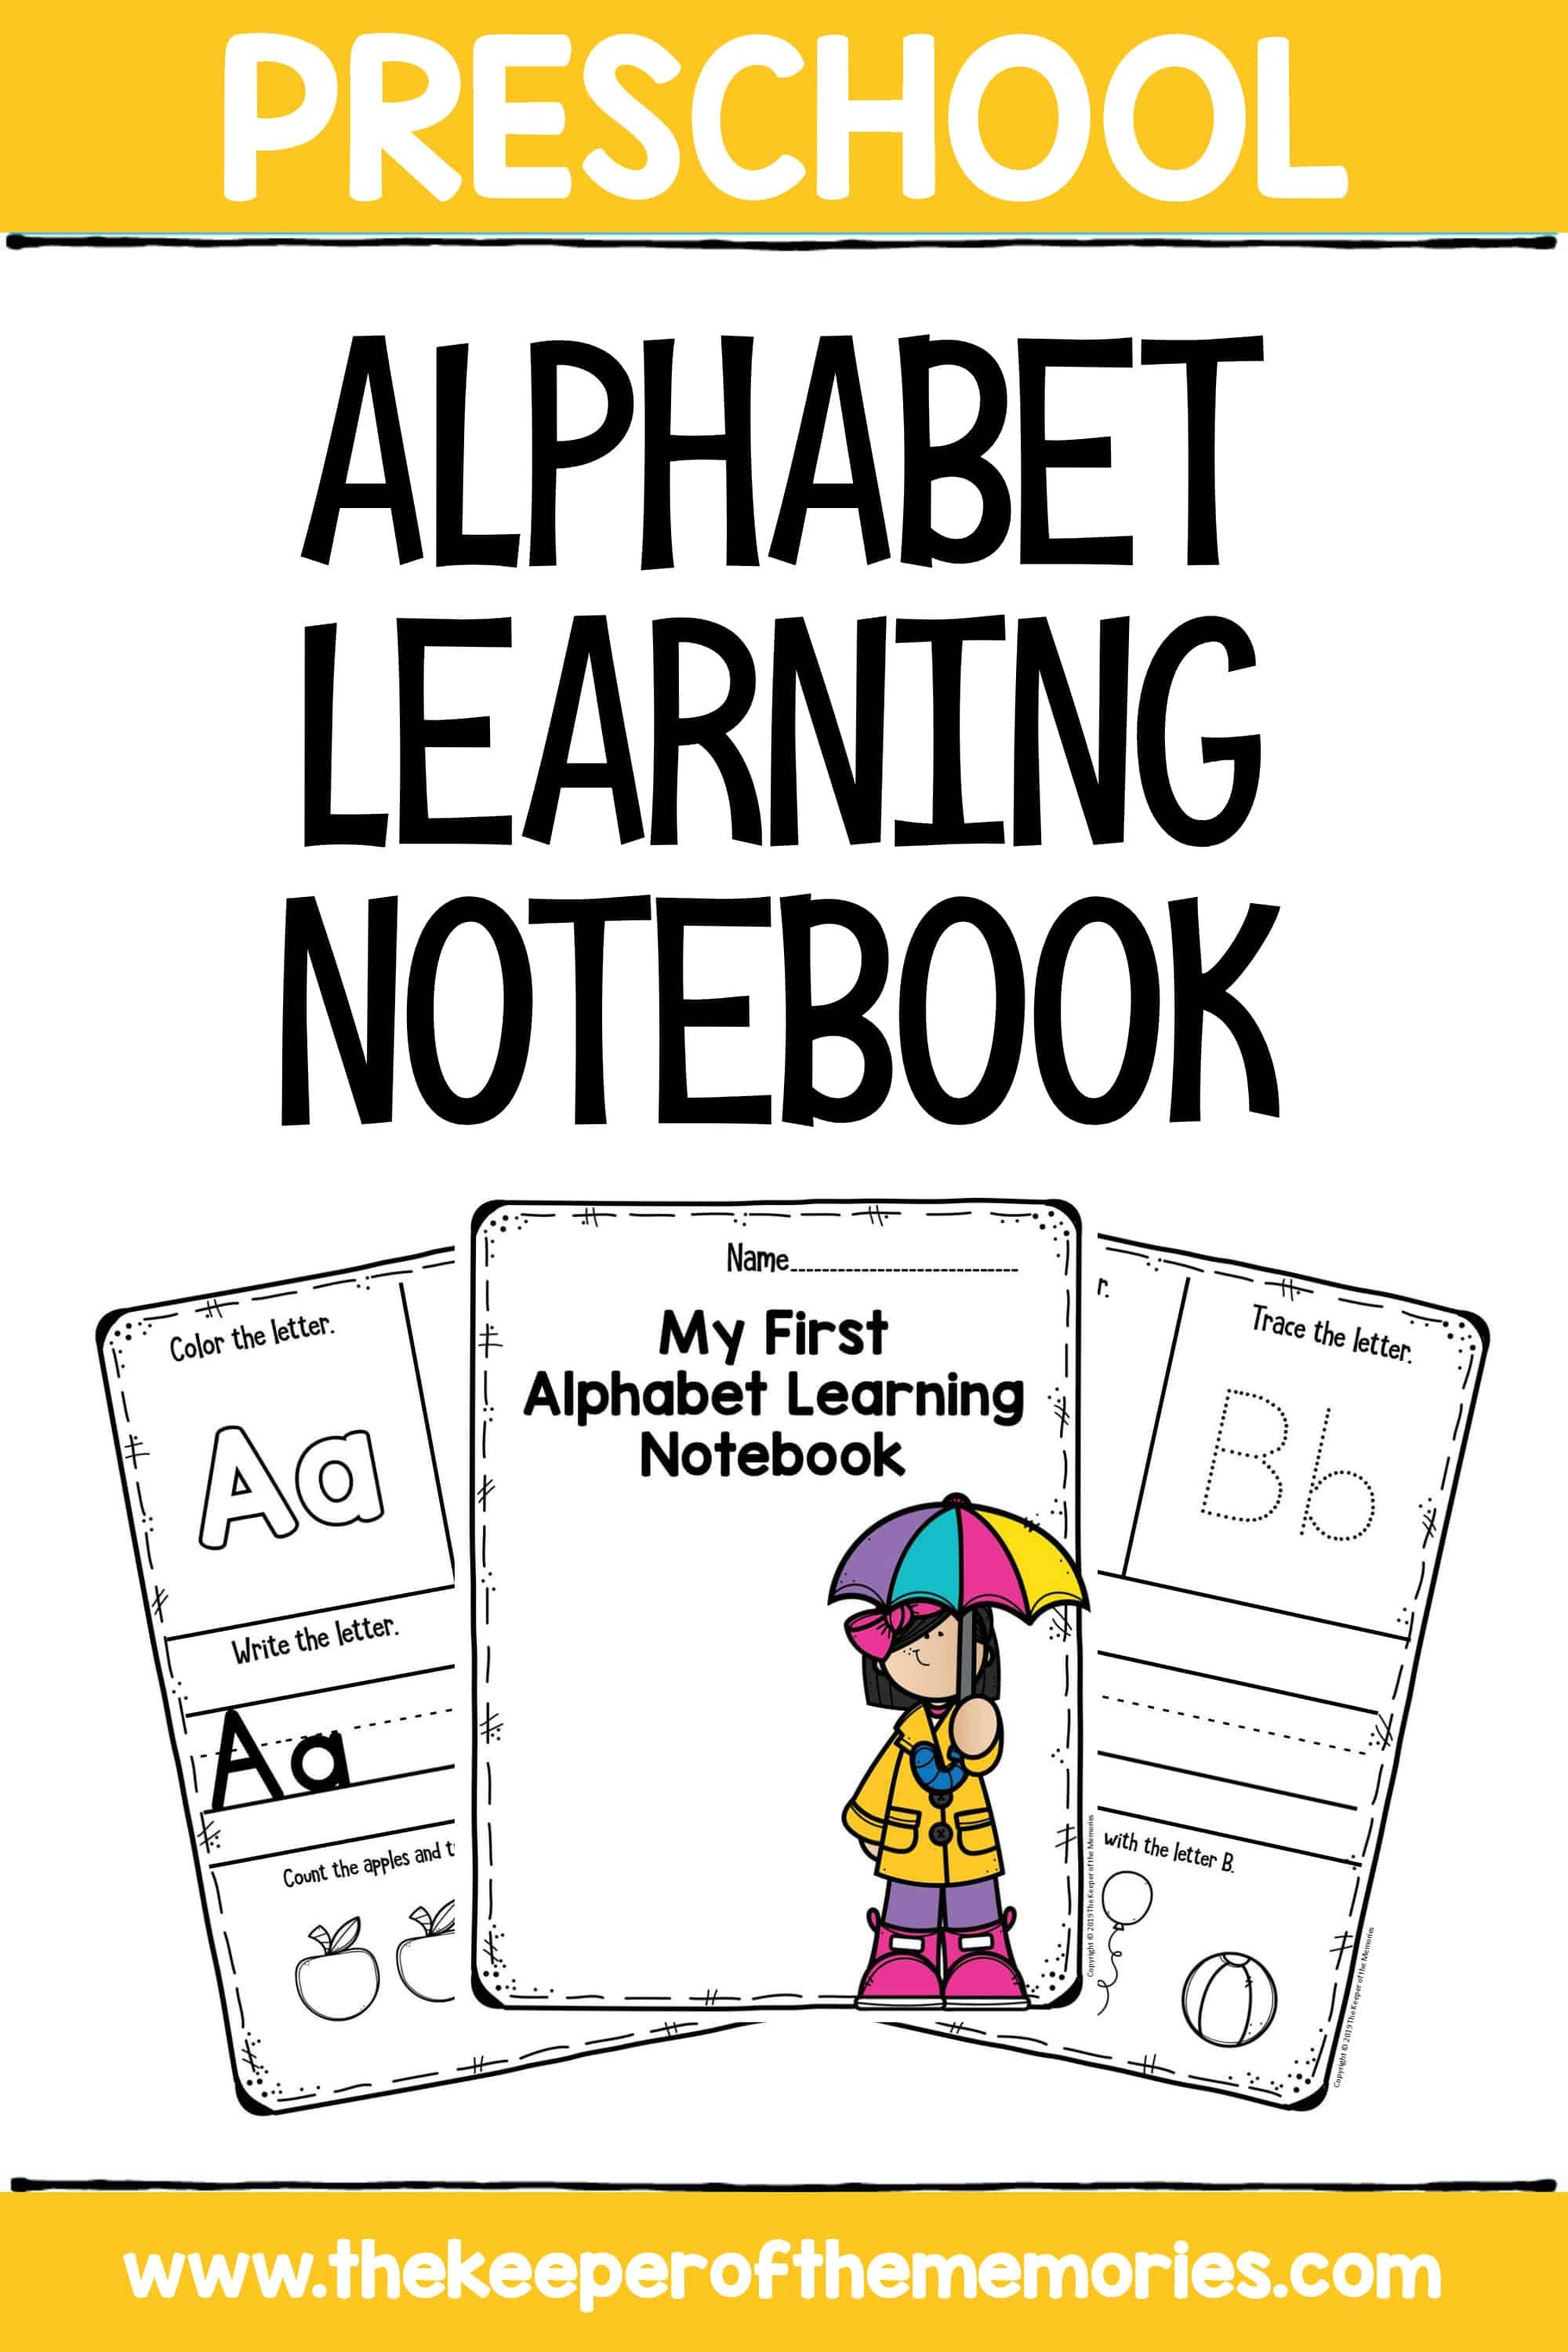 Preschool Alphabet Learning Notebook   The Keeper of the ...